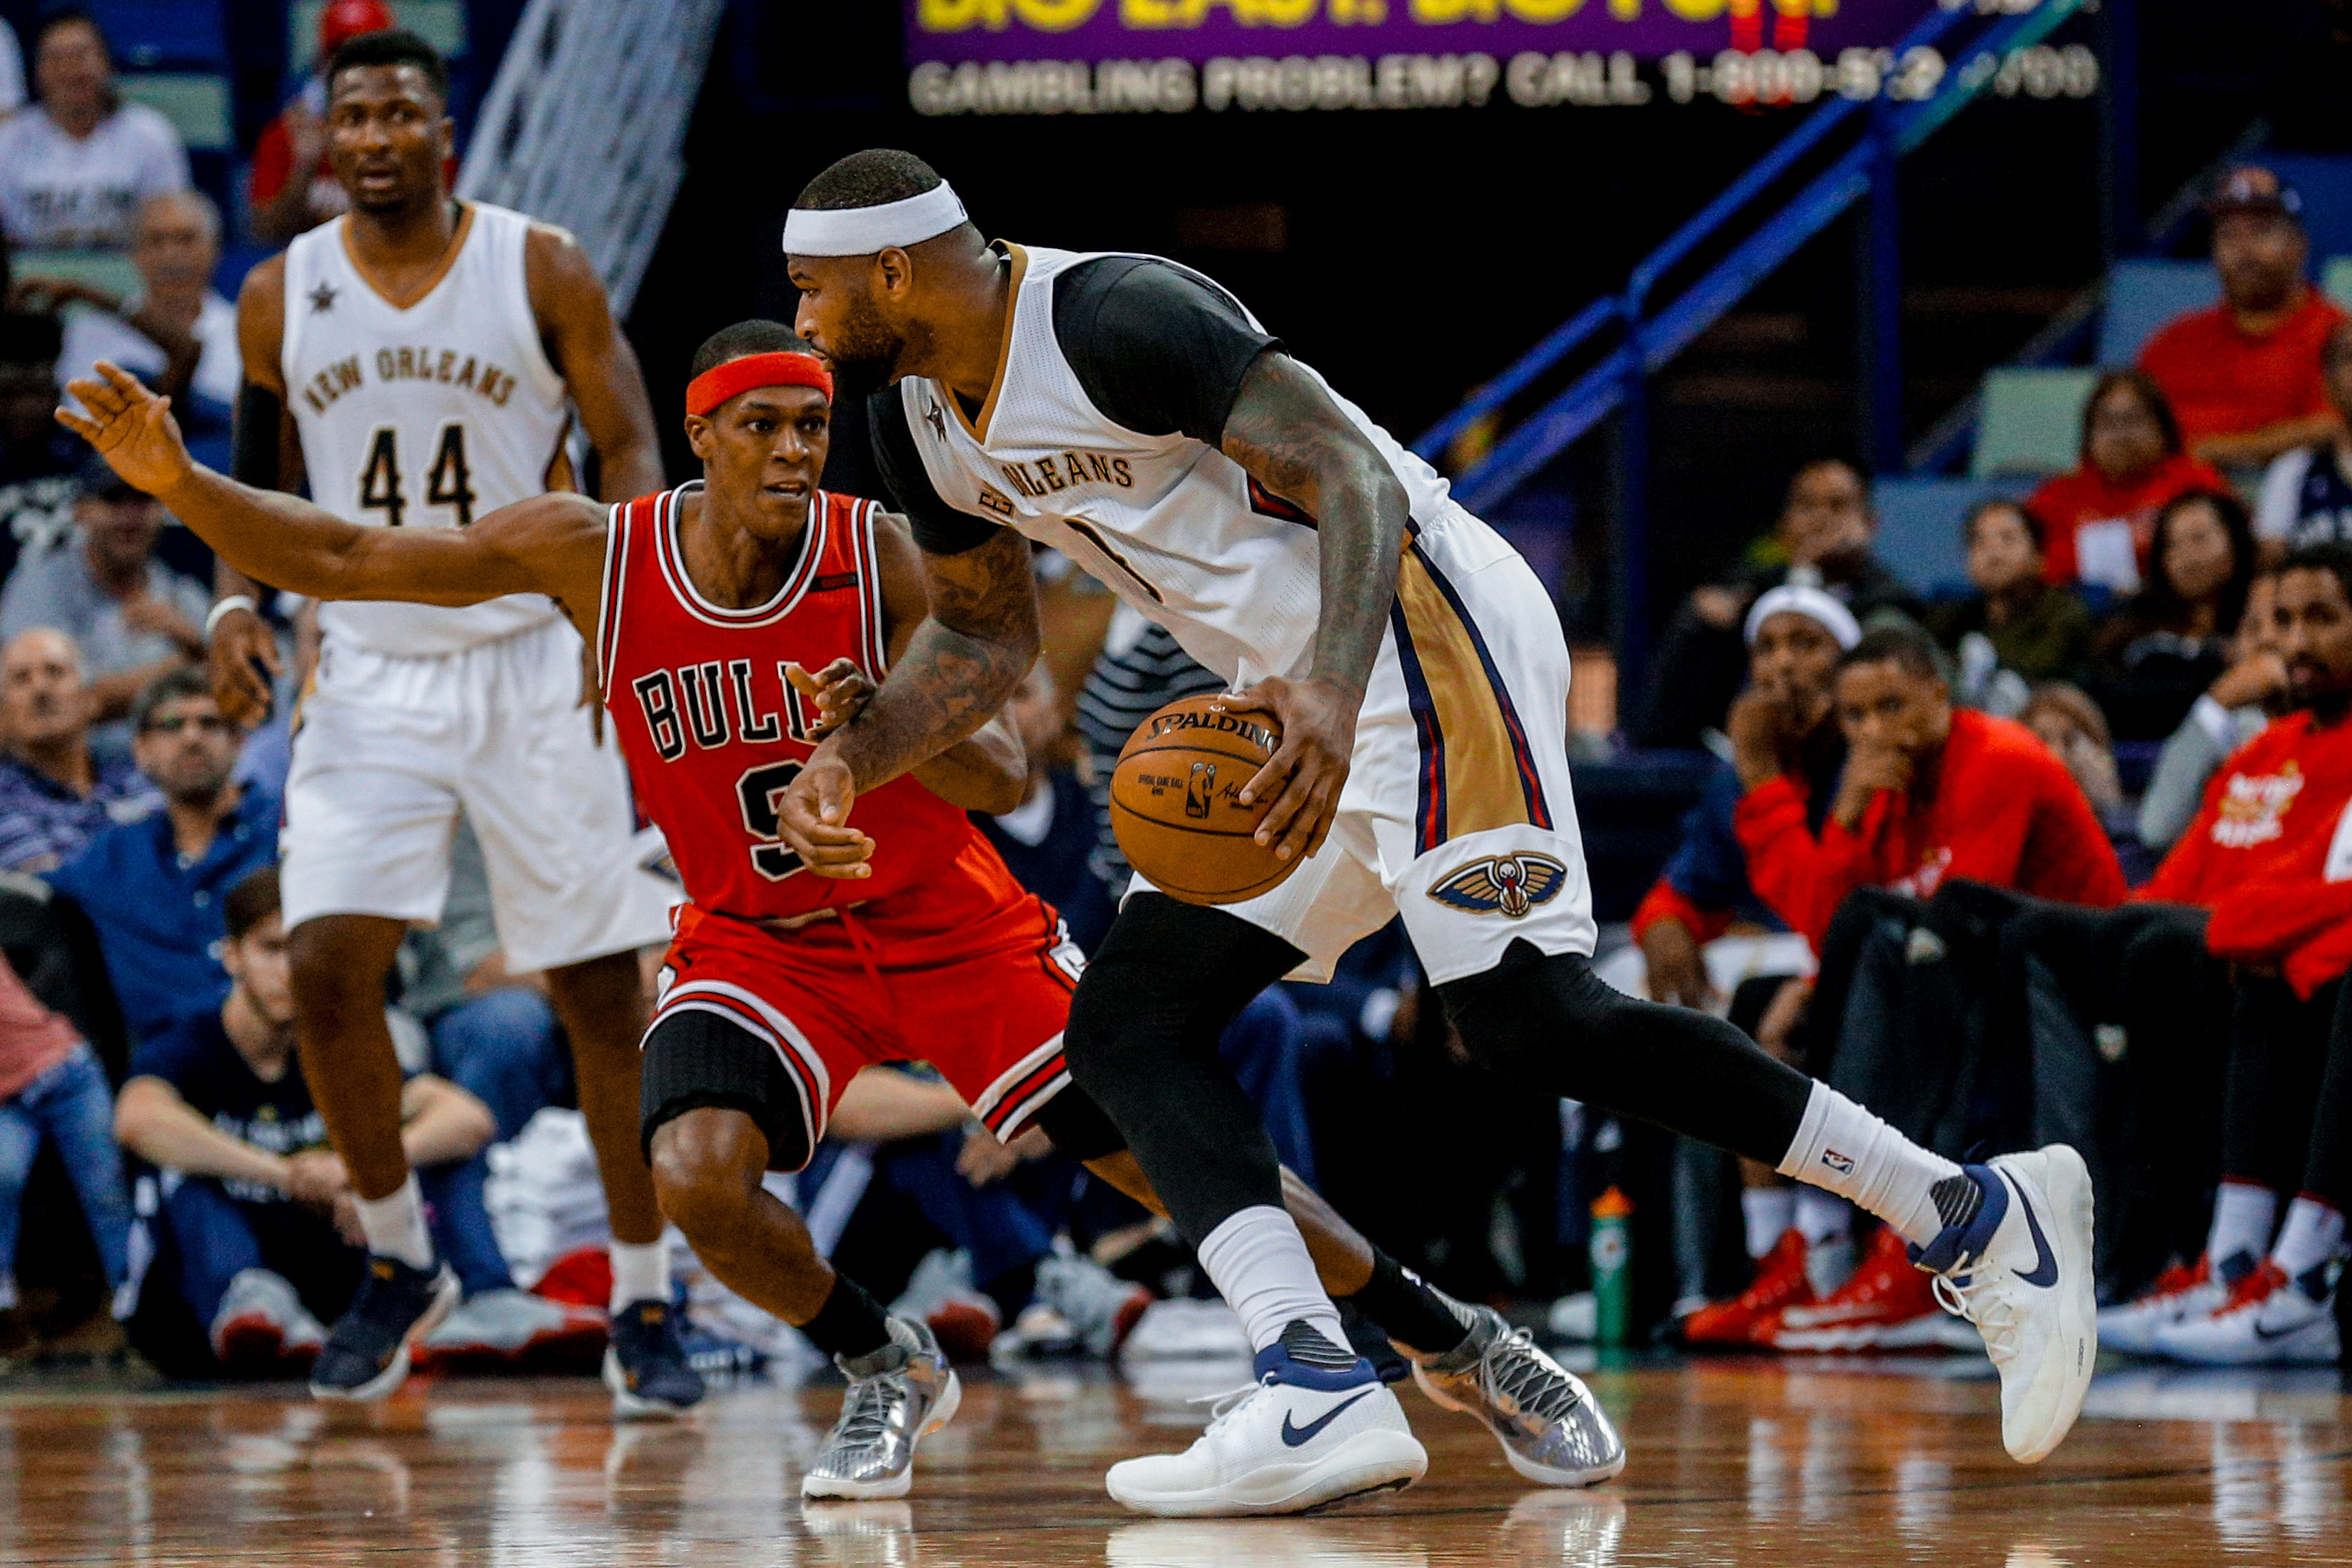 9988446-nba-chicago-bulls-at-new-orleans-pelicans